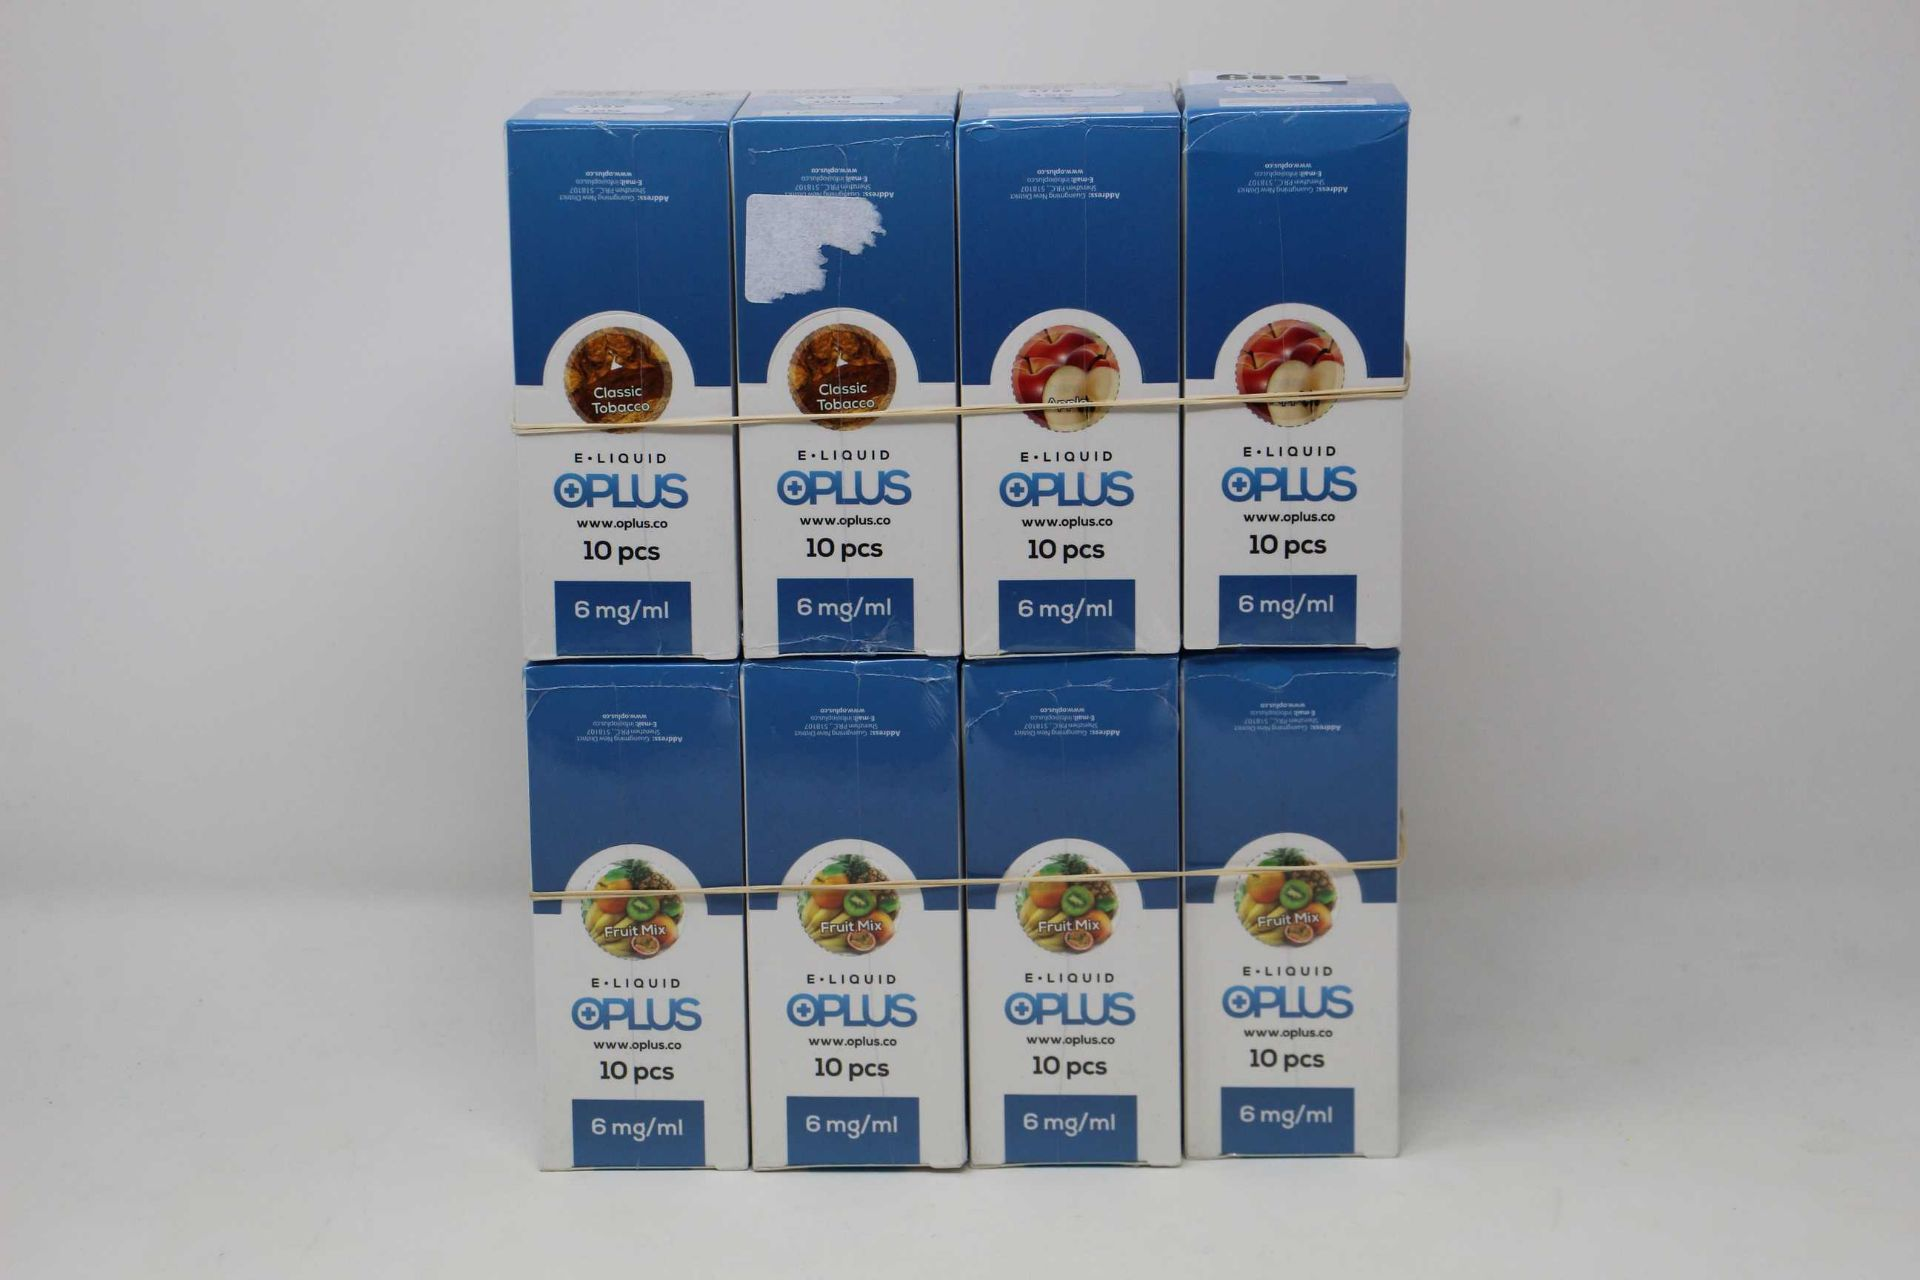 Eight boxes of ten (10ml) OPLus E-Liquid in Classic Tobacco, Apple and Fruit Mix 6mg/ml (Over 18s